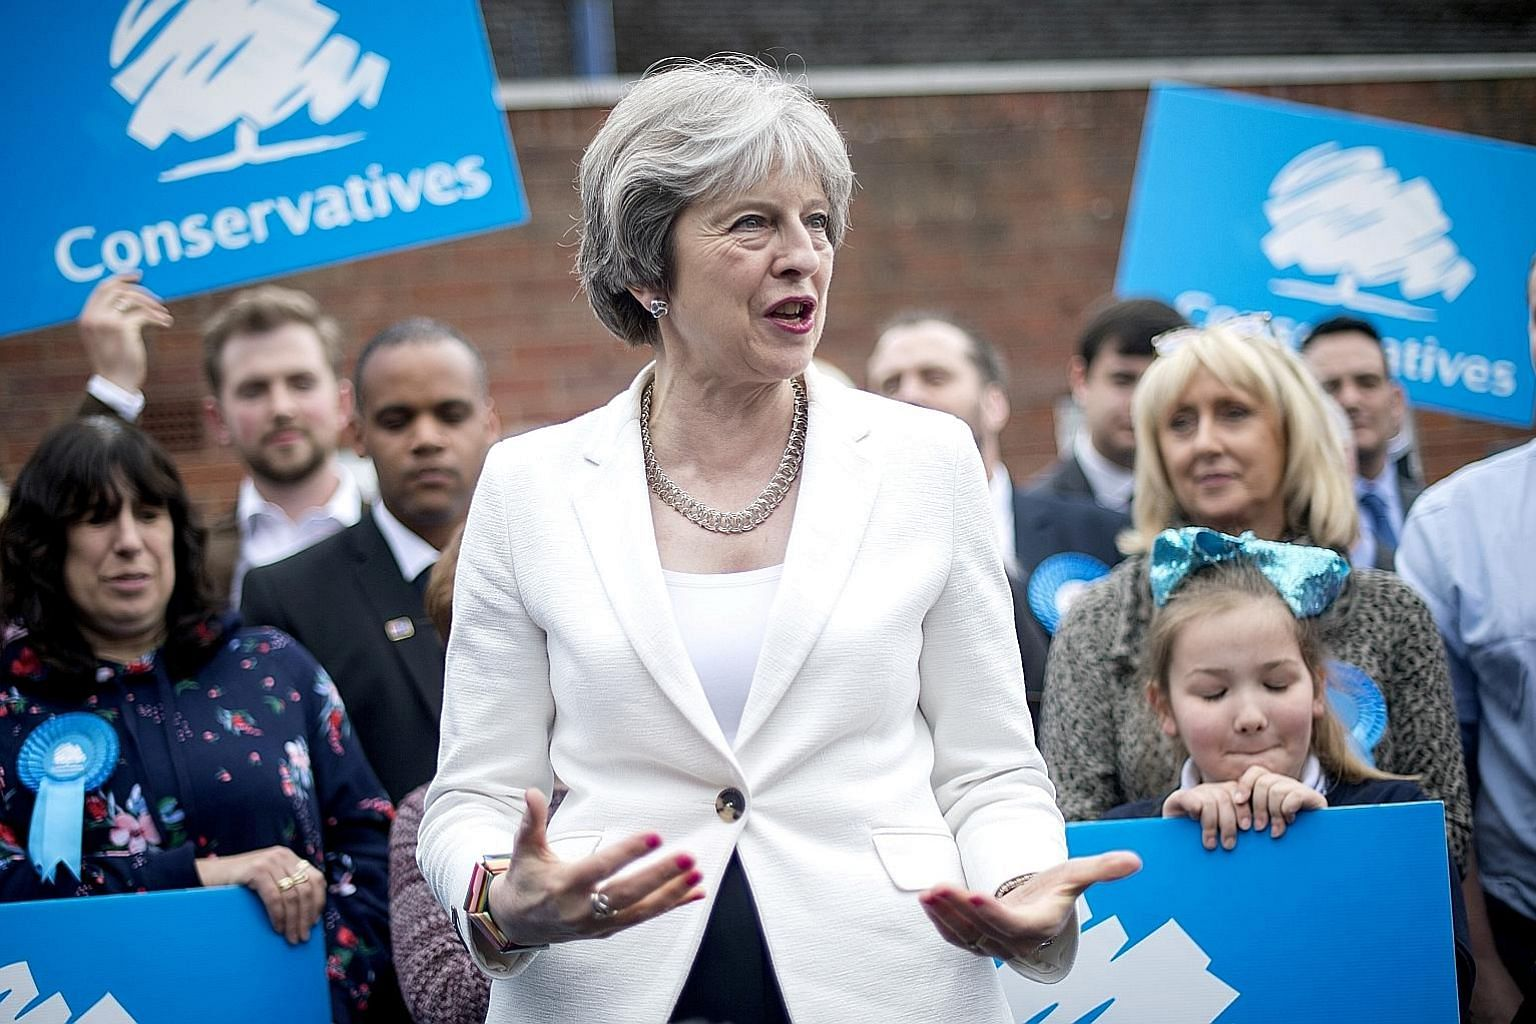 British Prime Minister Theresa May stepped down as the leader of the Conservative Party yesterday, after thrice failing to get her controversial exit deal through Parliament and deliver Brexit. She had survived a vote of no confidence last December b